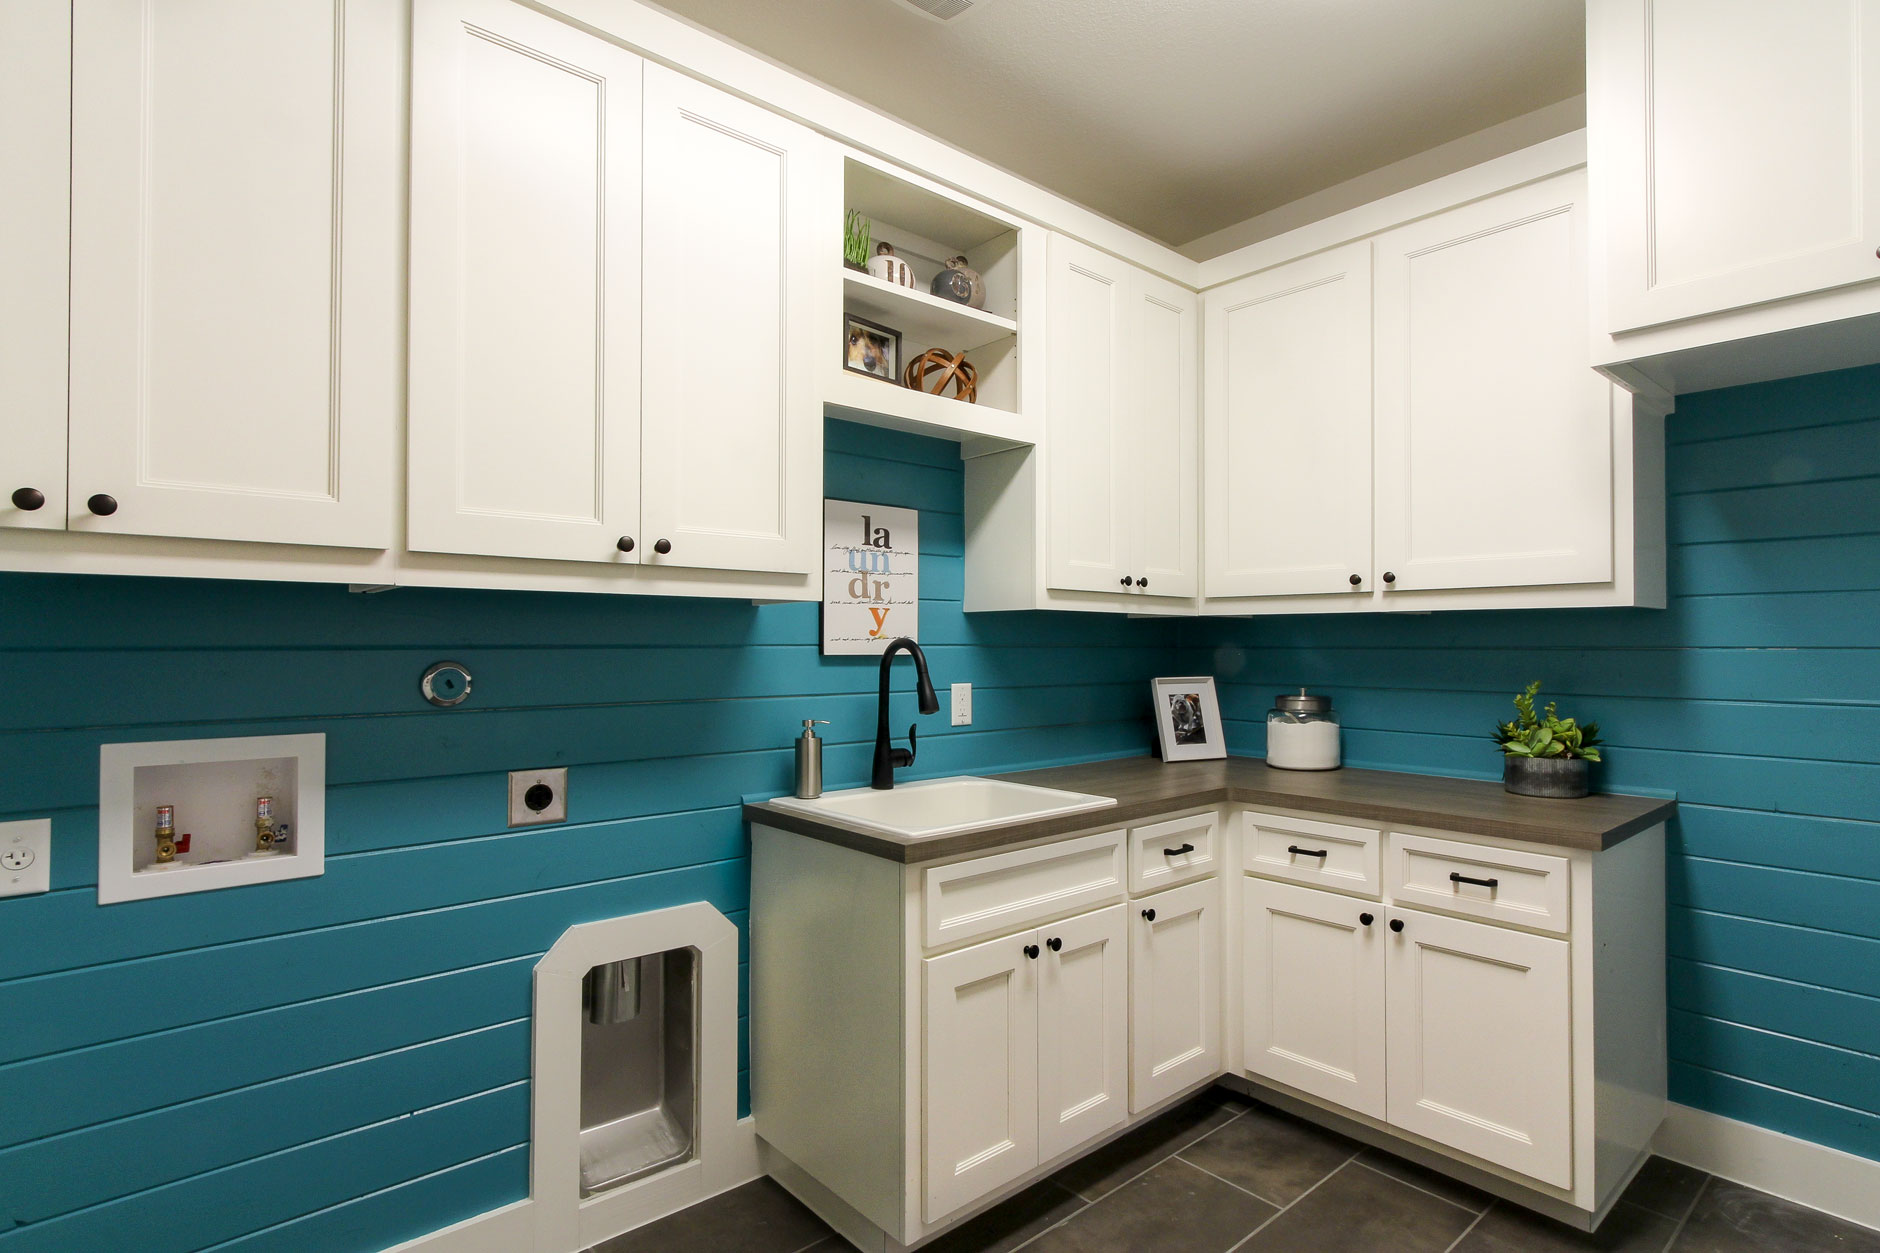 Laundry room white cabinets, turquoise shiplap walls, TaylorCraft Cabinet Doors with MW6 frame